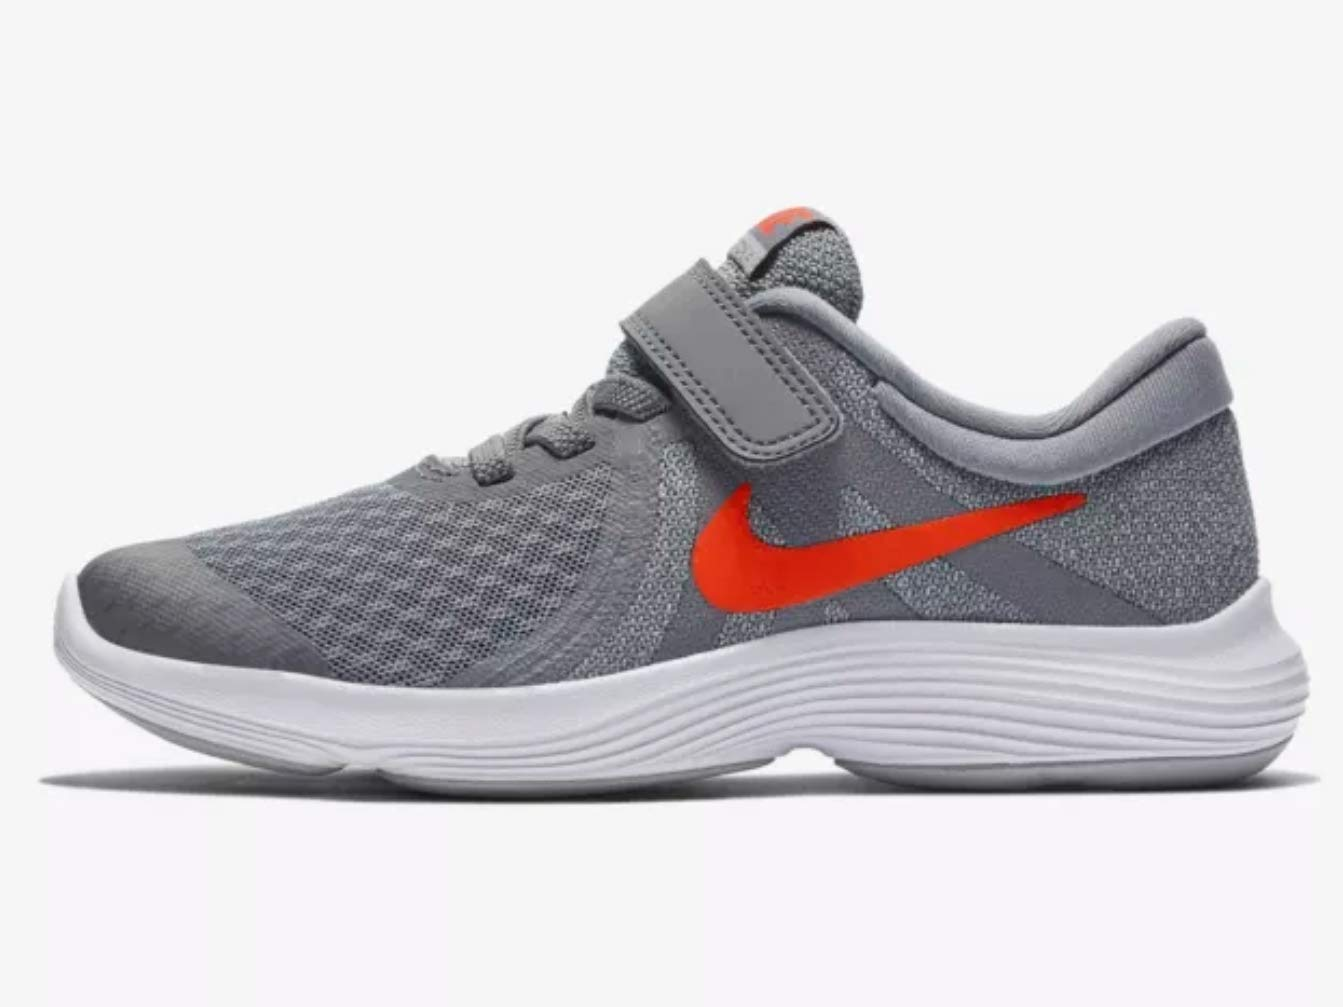 Nike Boy's Revolution 4 (PSV) Running Shoes (1.5 M Little Kid US, Cool Grey/Habanero red/Wolf Grey/White)